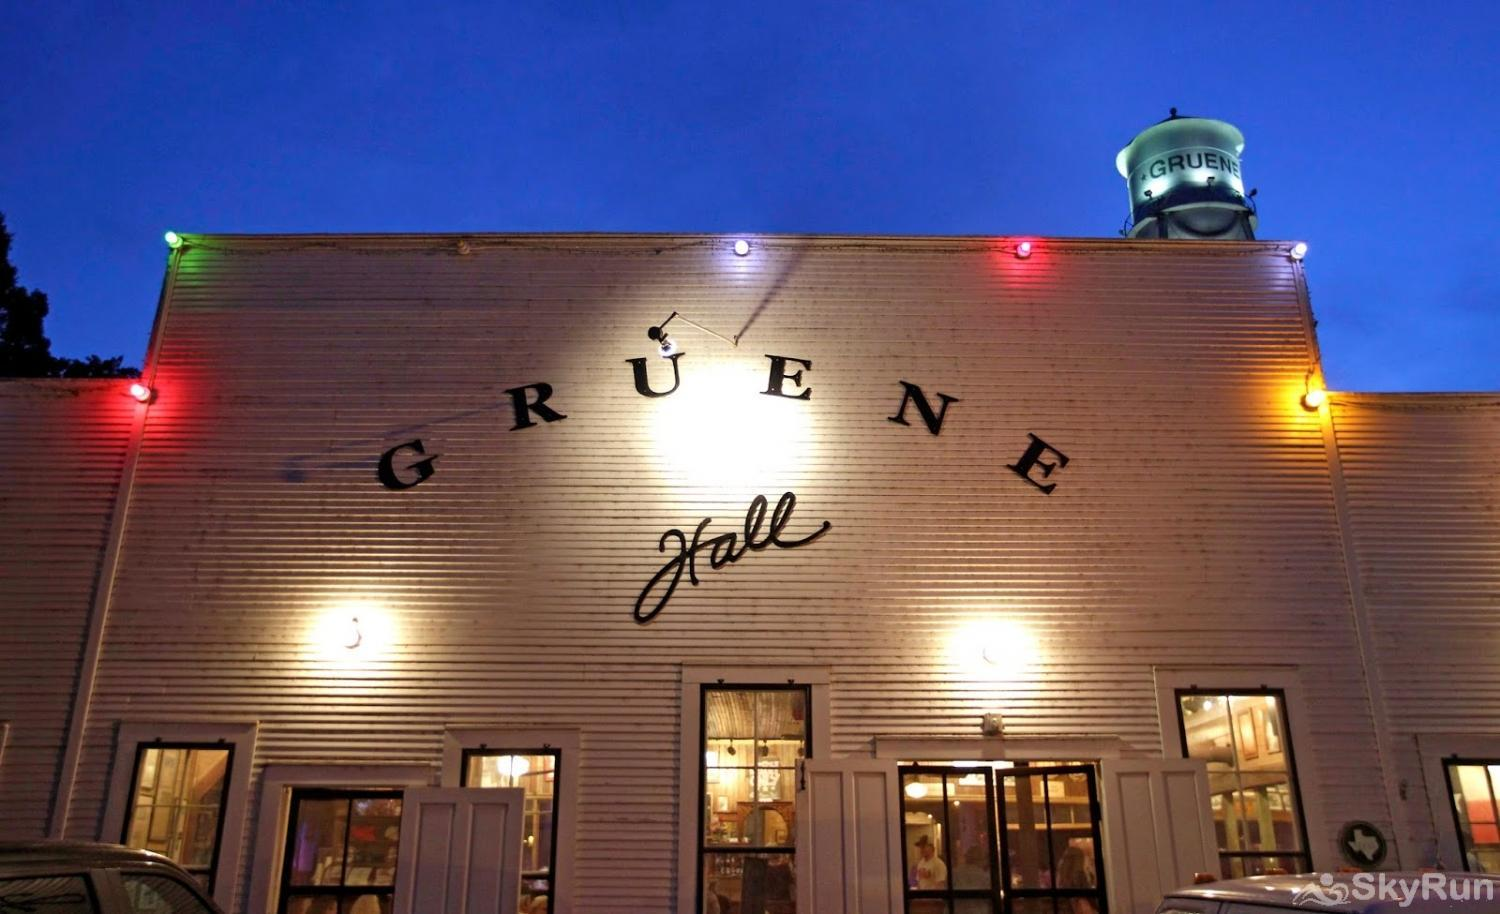 STAR OF TEXAS Gruene Hall, 12 Miles from the Home